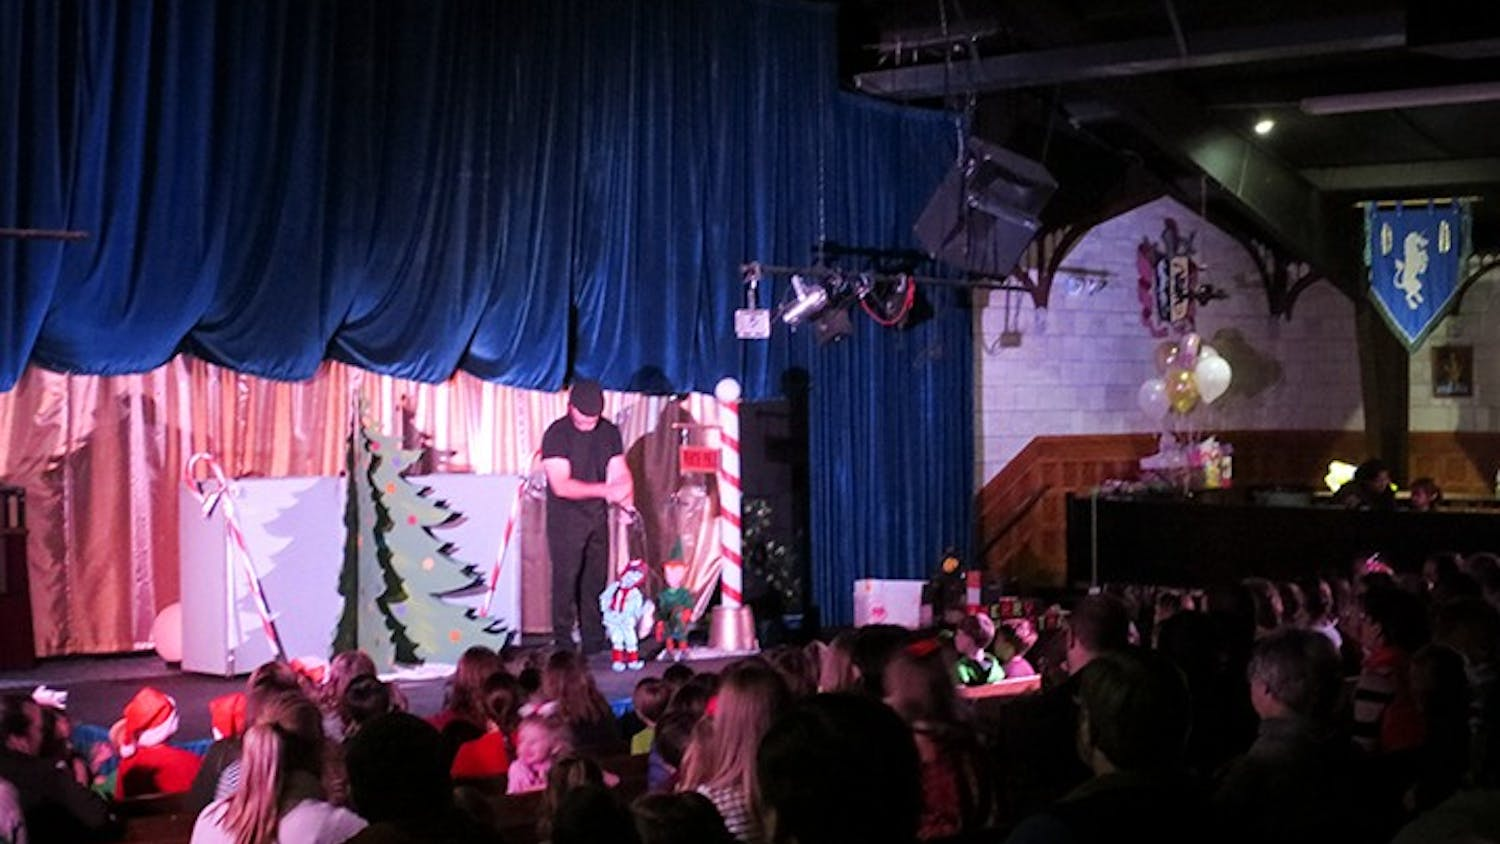 The Columbia Marionette Theatre puts on a Christmas show for a live audience. Columbia Marionette Theatre's biggest customers are schools.